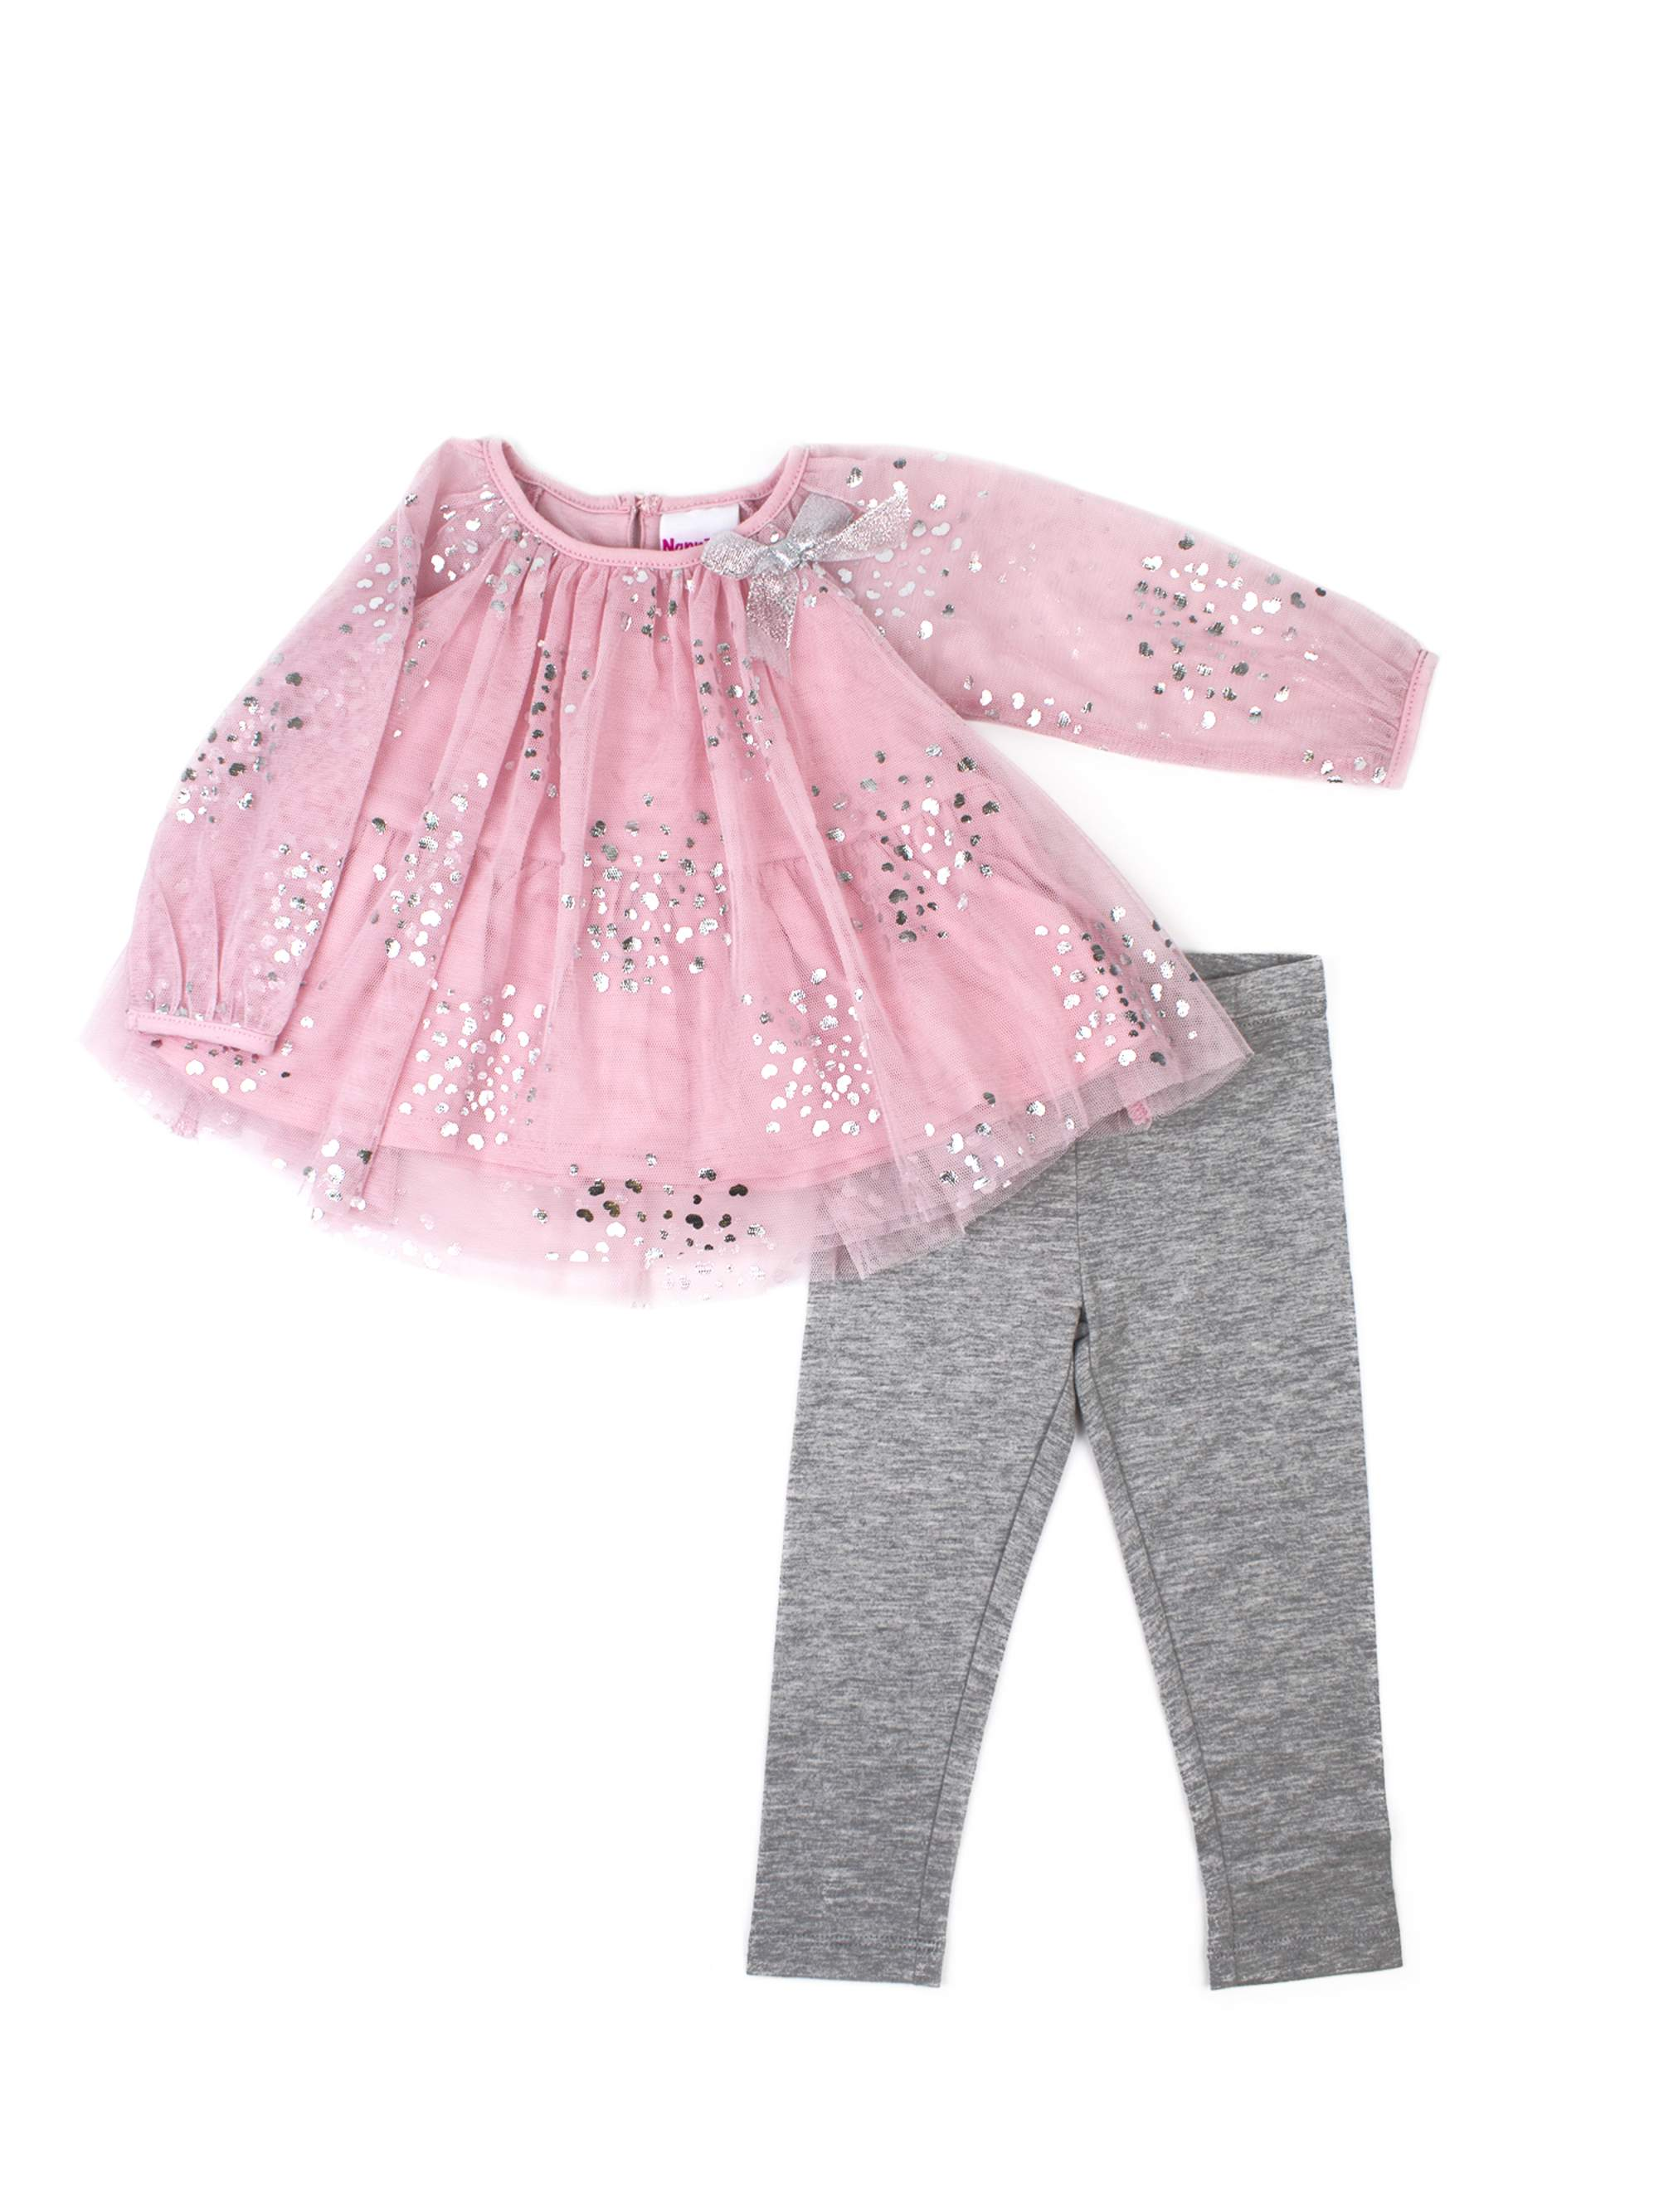 Printed Tulle Top and Legging, 2-Piece Outfit Set (Little Girls)